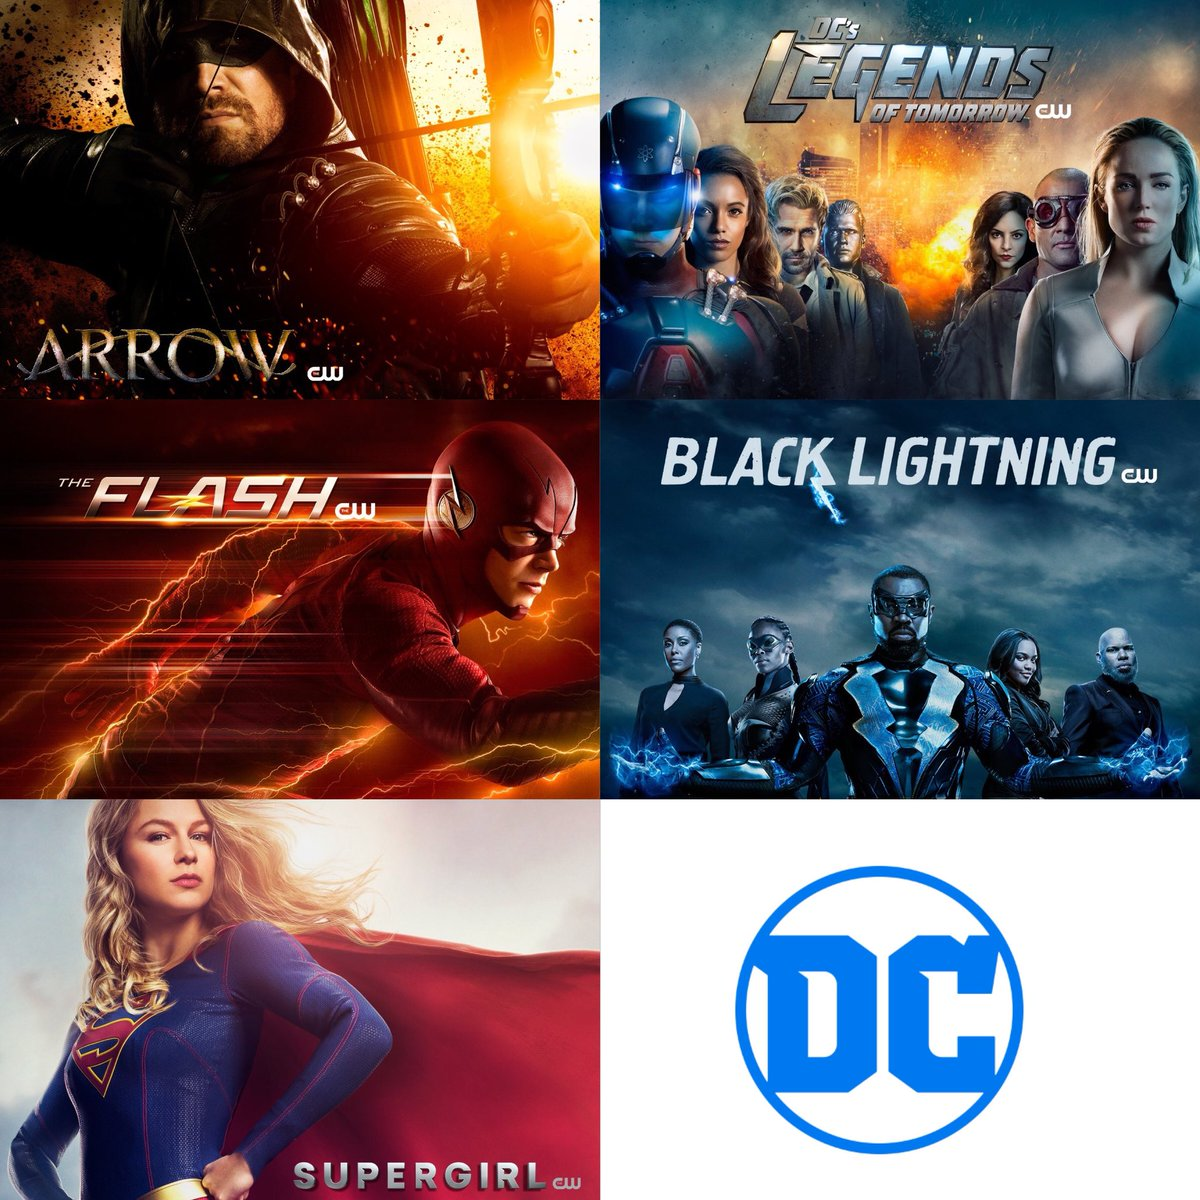 Dc Comics United ʬ On Twitter This Fall Sunday Supergirl Monday Arrow Legends Of Tomorrow Tuesday The Flash Black Lightning